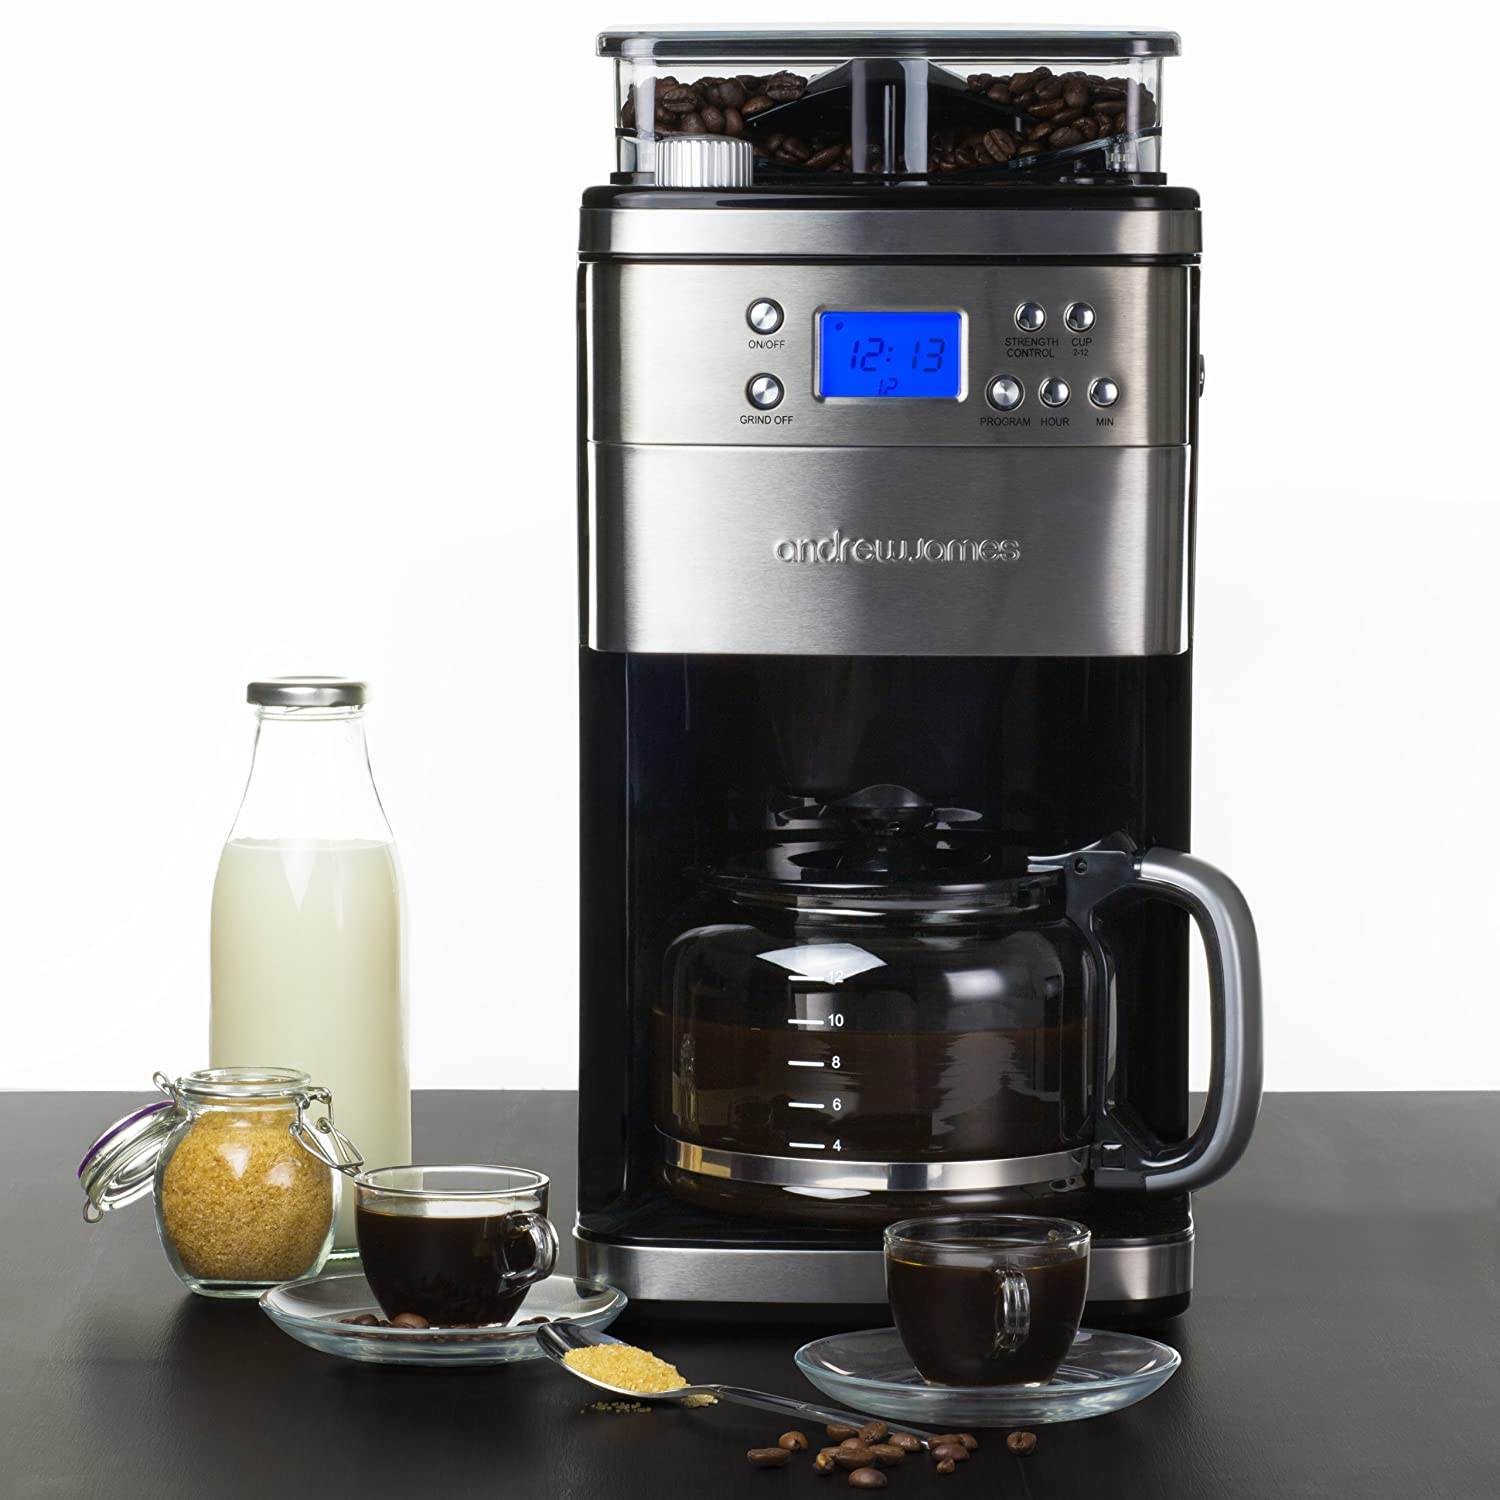 This Andrew James coffee maker features an integrated coffee grinder.